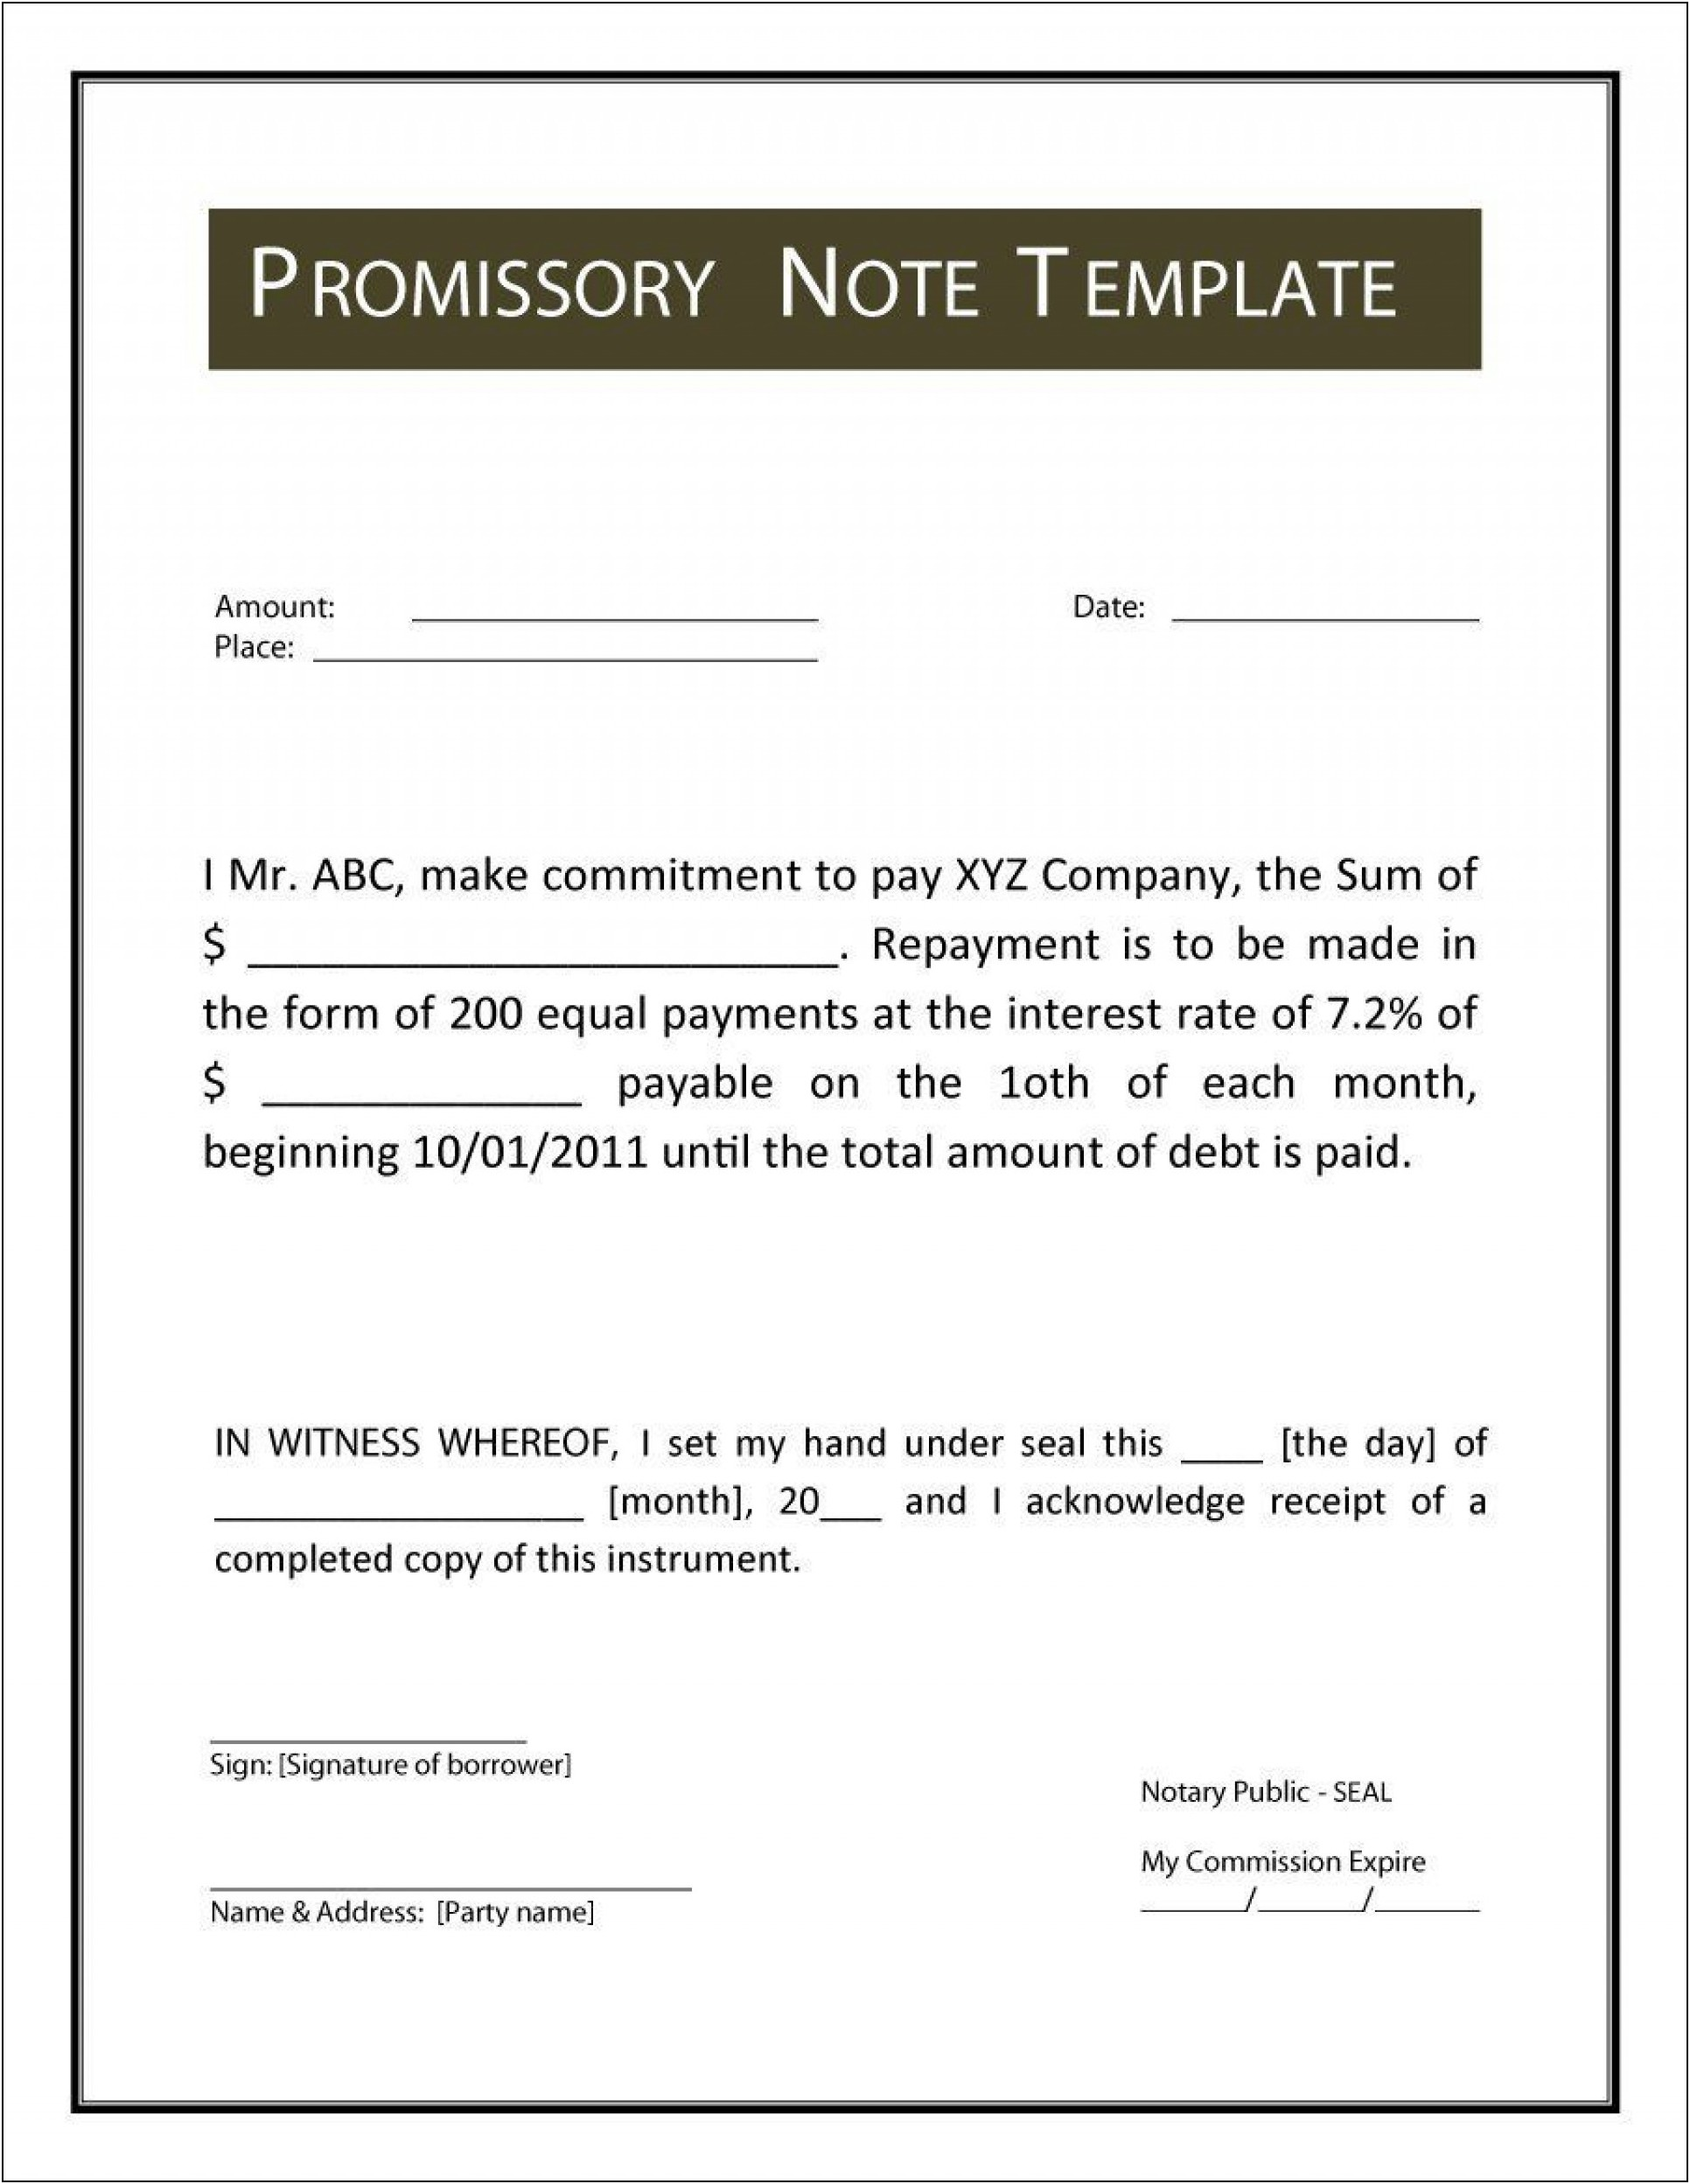 Standard Promissory Note Word Template